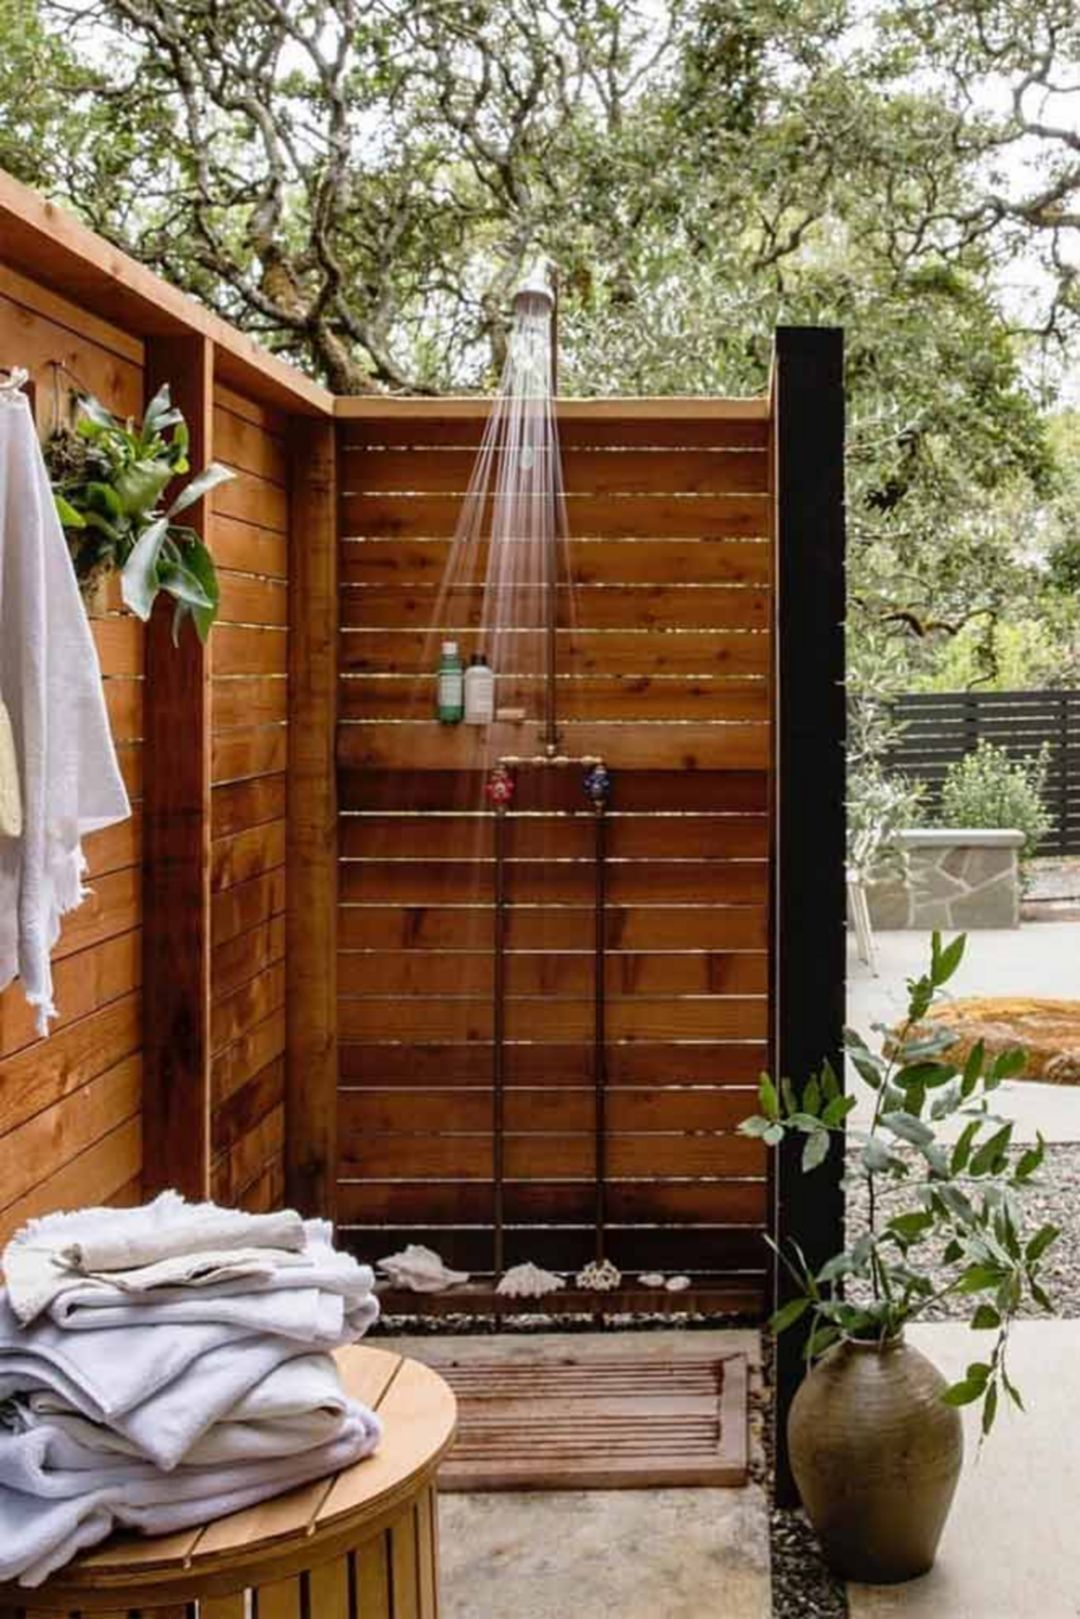 17 Fabulous Outdoor Bathroom Designs That Are Suitable For Your Home Yard